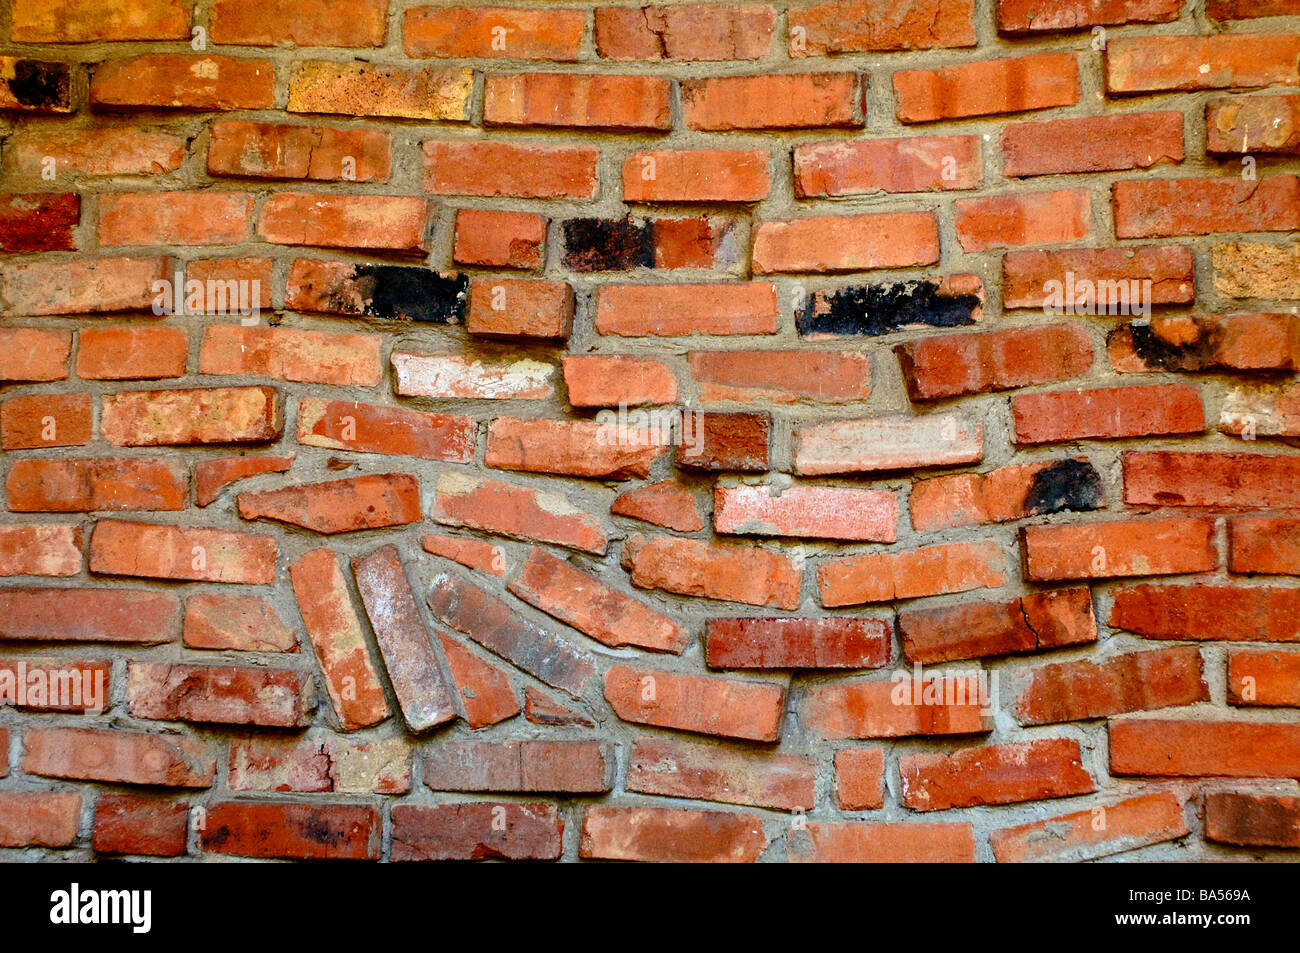 Red Clay Bricks : Red clay bricks laid in a eccentric chaotic design for